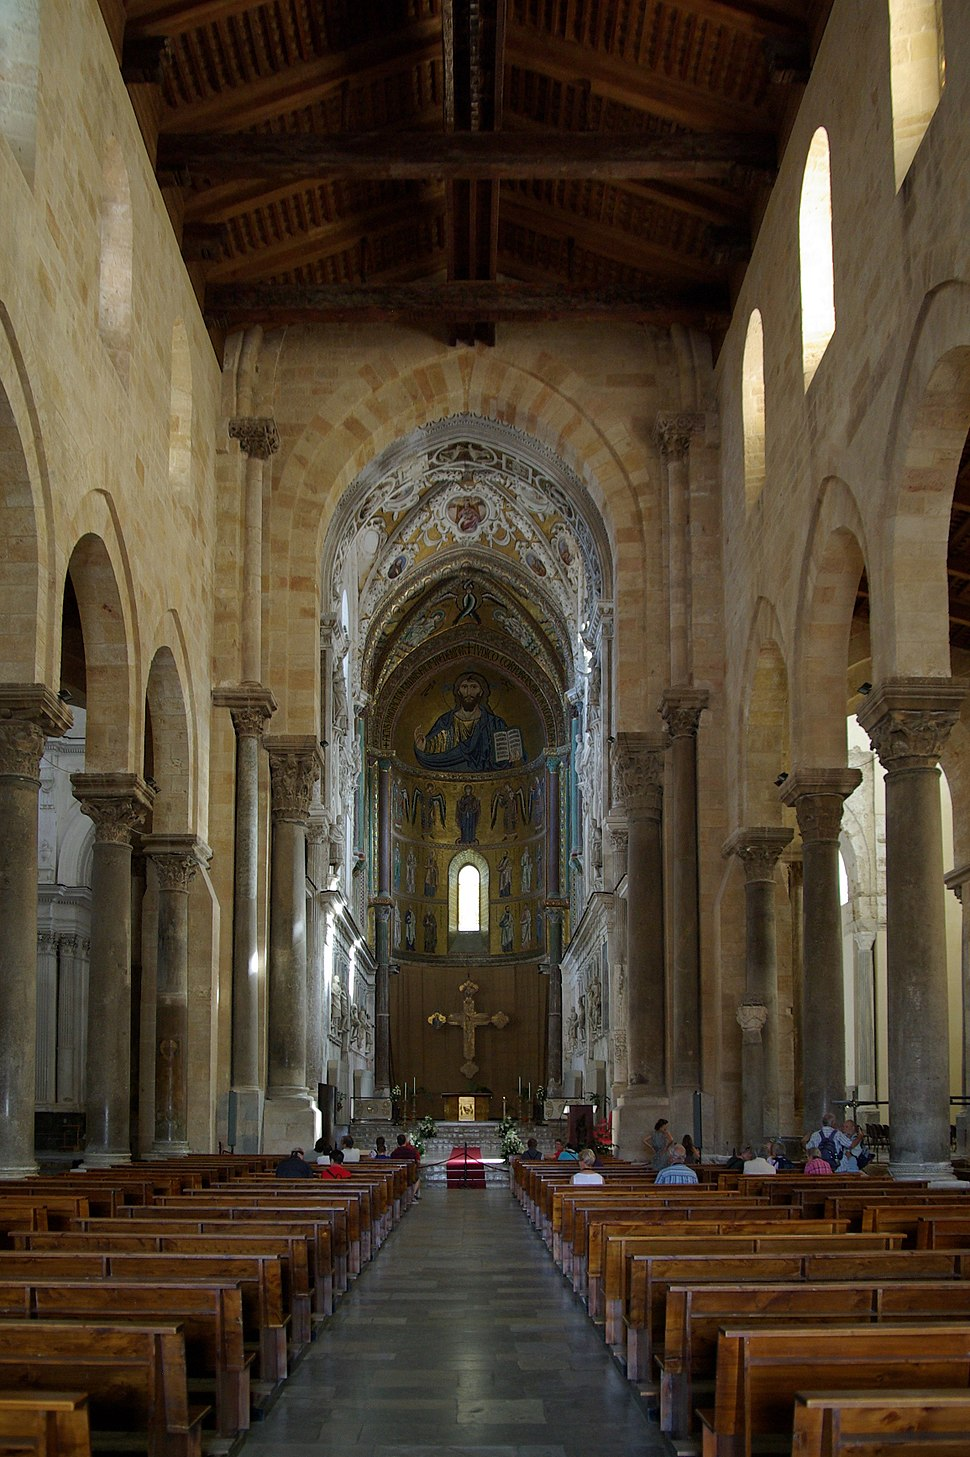 Cefalu Cathedral interior BW 2012-10-11 12-07-53